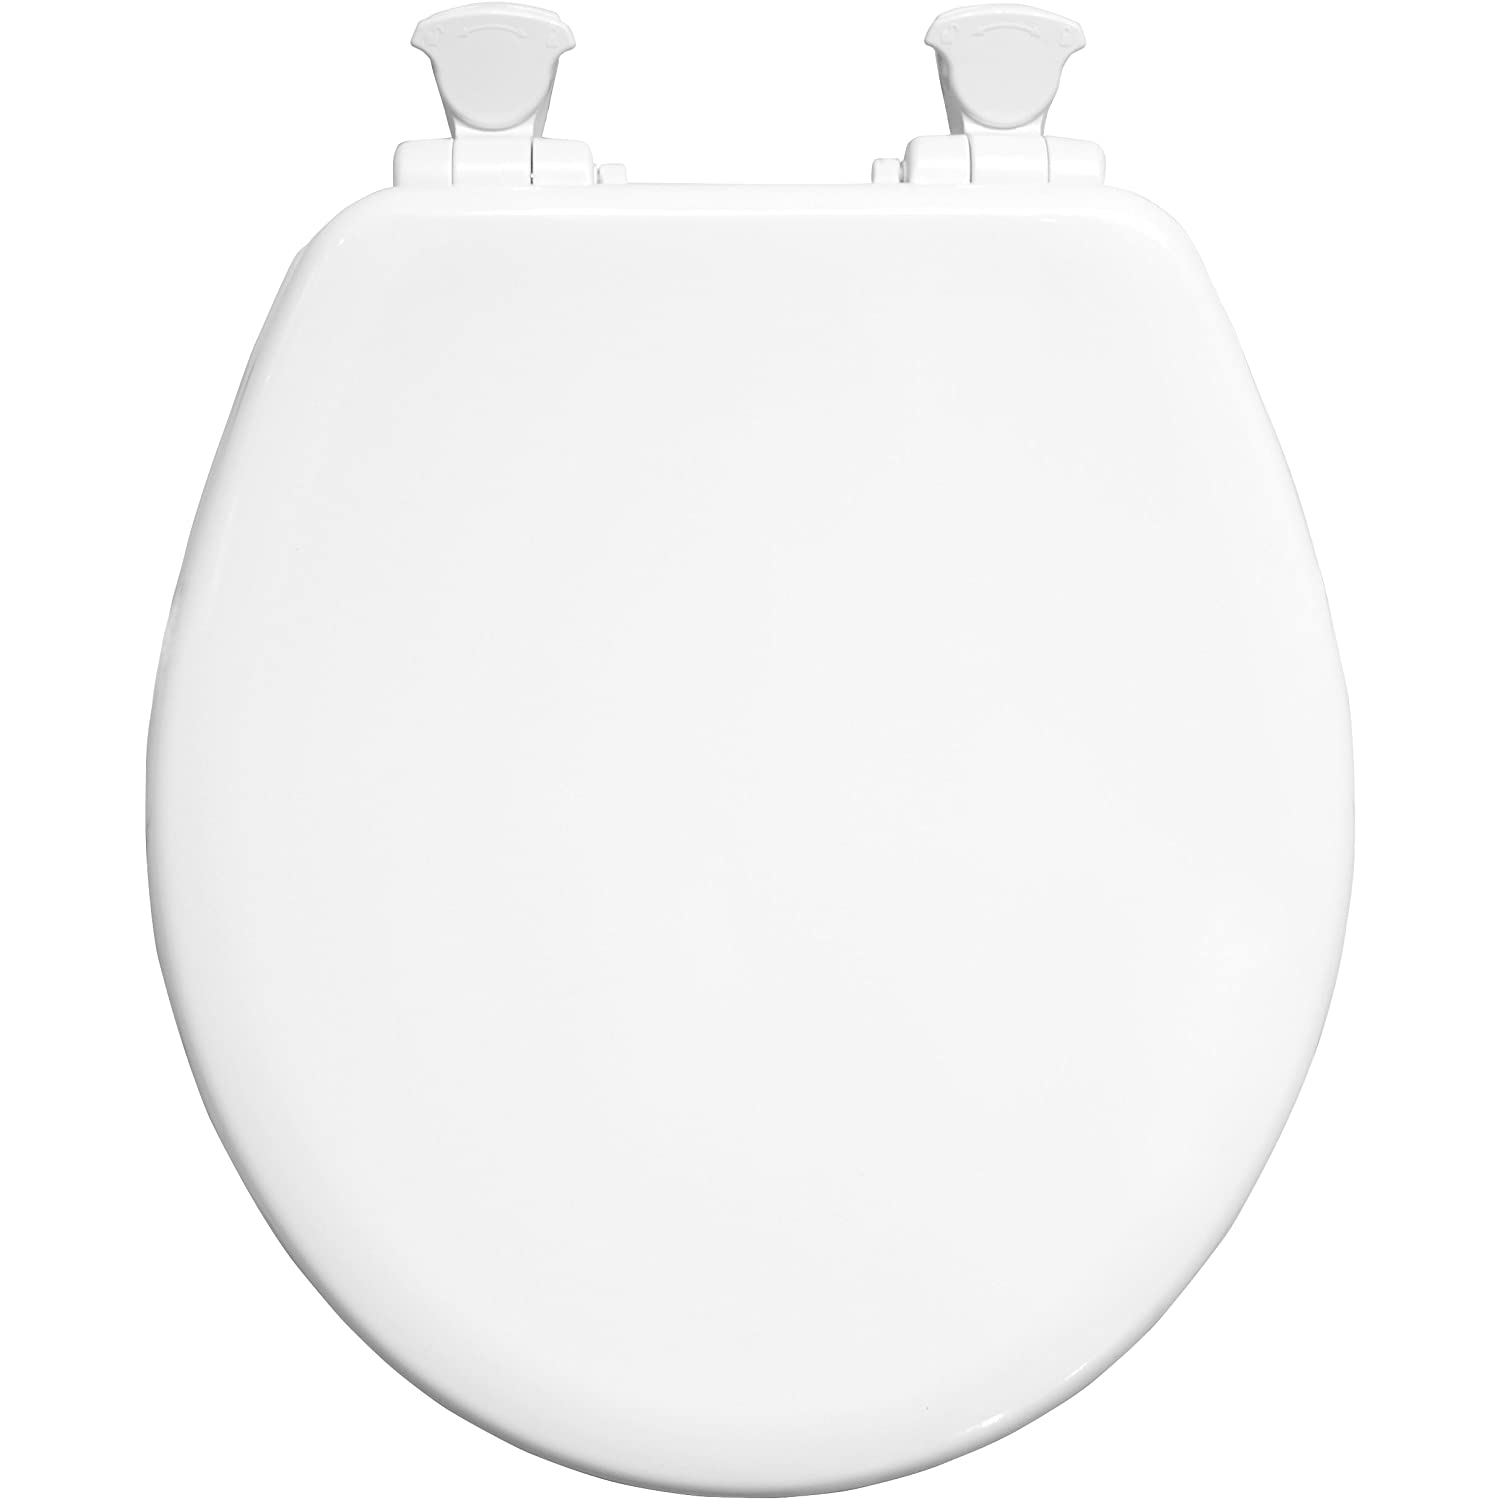 bemis toilet seat with child seat. Bemis NextStep STAY TIGHT Child Adult Slow Close Take Off Toilet Seat  White Amazon Co Uk DIY Tools